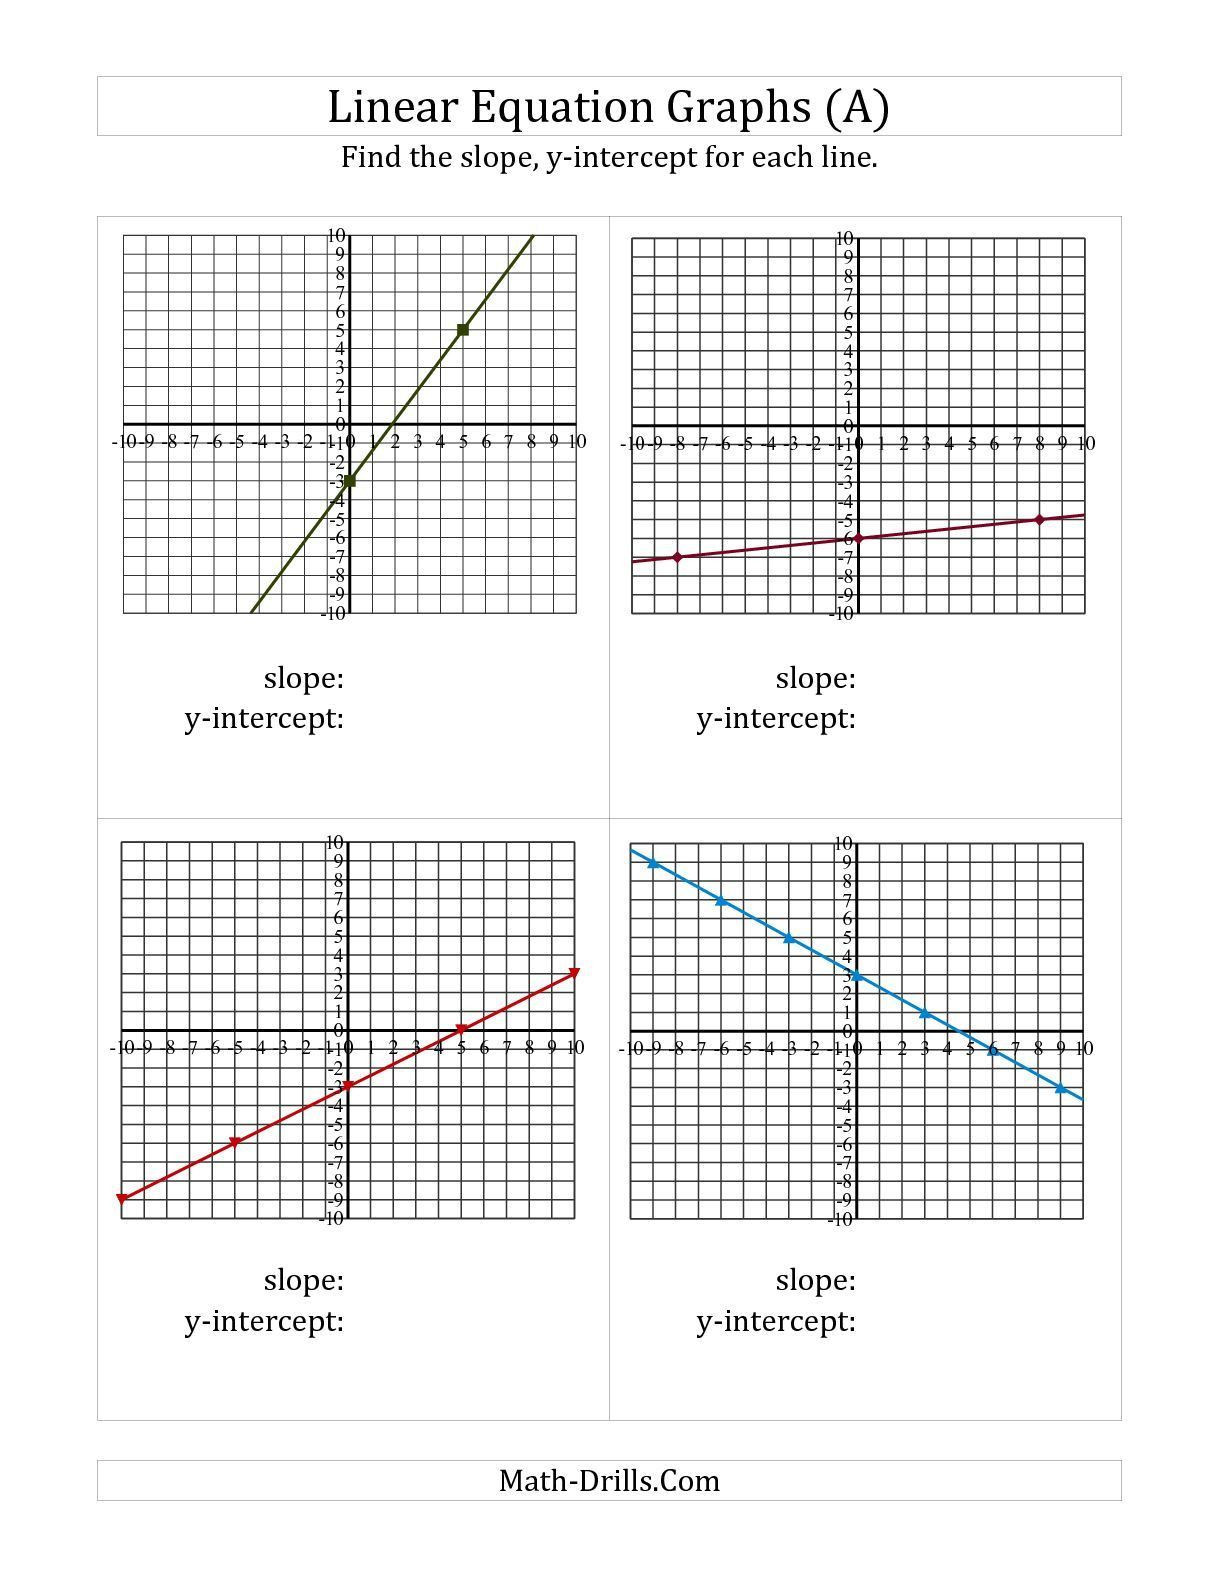 Linear Equations From Tables Worksheet Theme Library